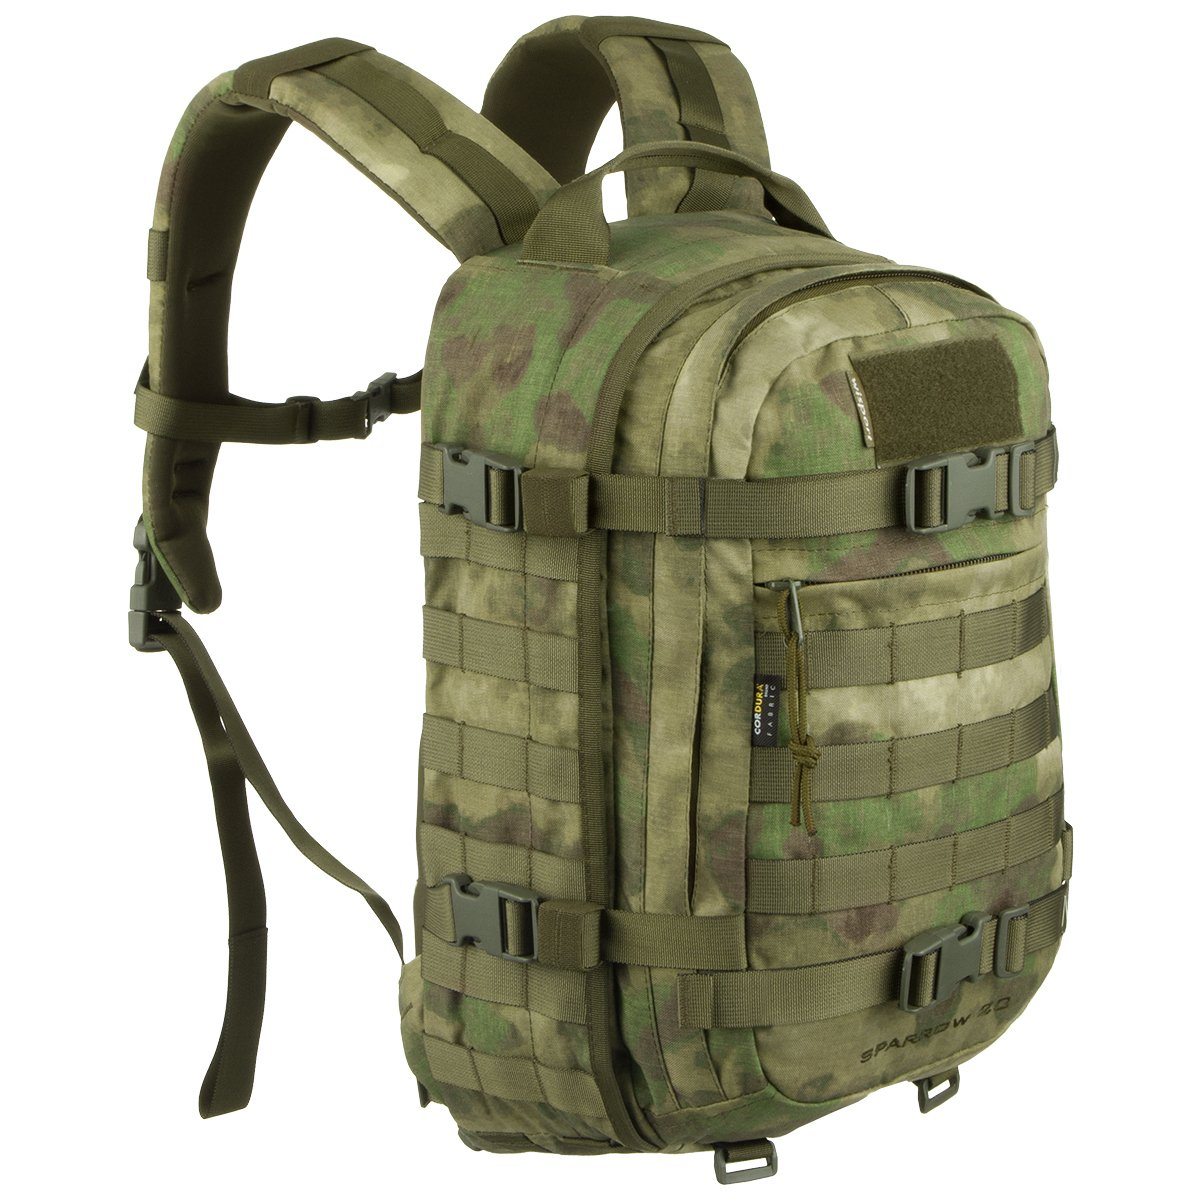 Wisport Sparrow 20 II Rucksack A-TACS FG by Wisport (Image #1)